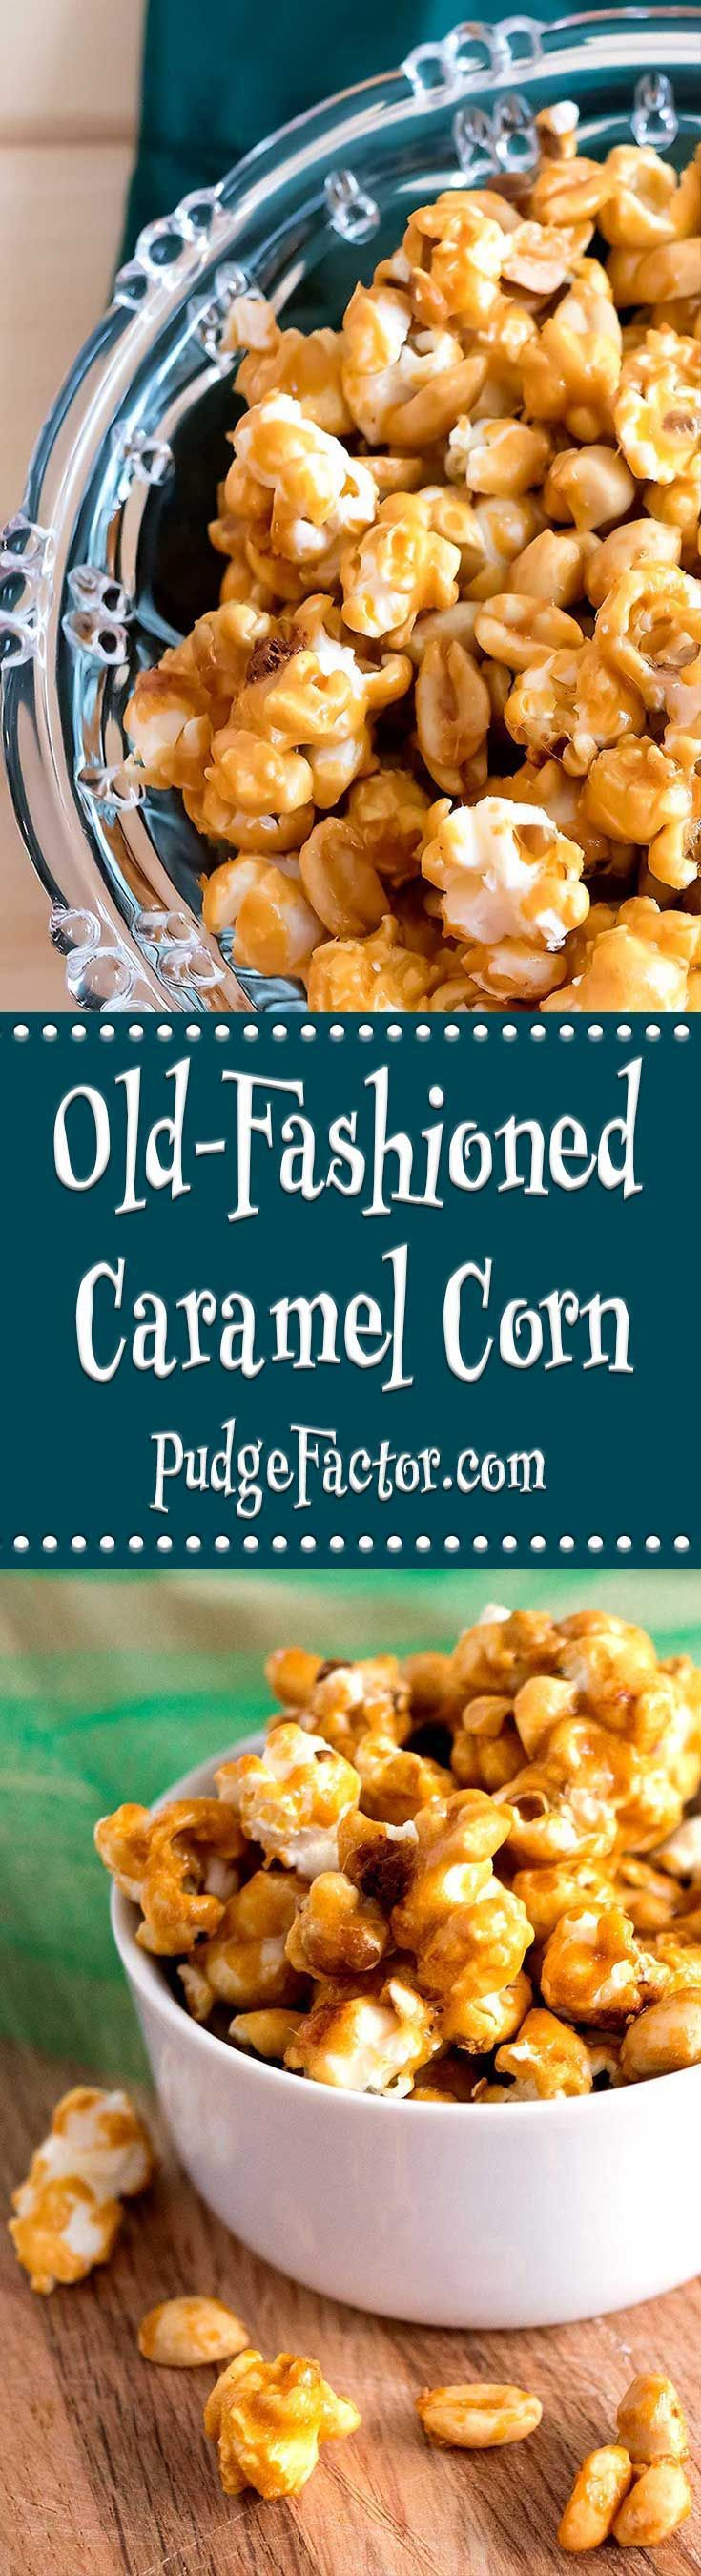 Old-Fashioned Caramel Corn is sweet, crunchy & totally addictive. When stored in an airtight container, it will keep for several weeks. via /c2king/